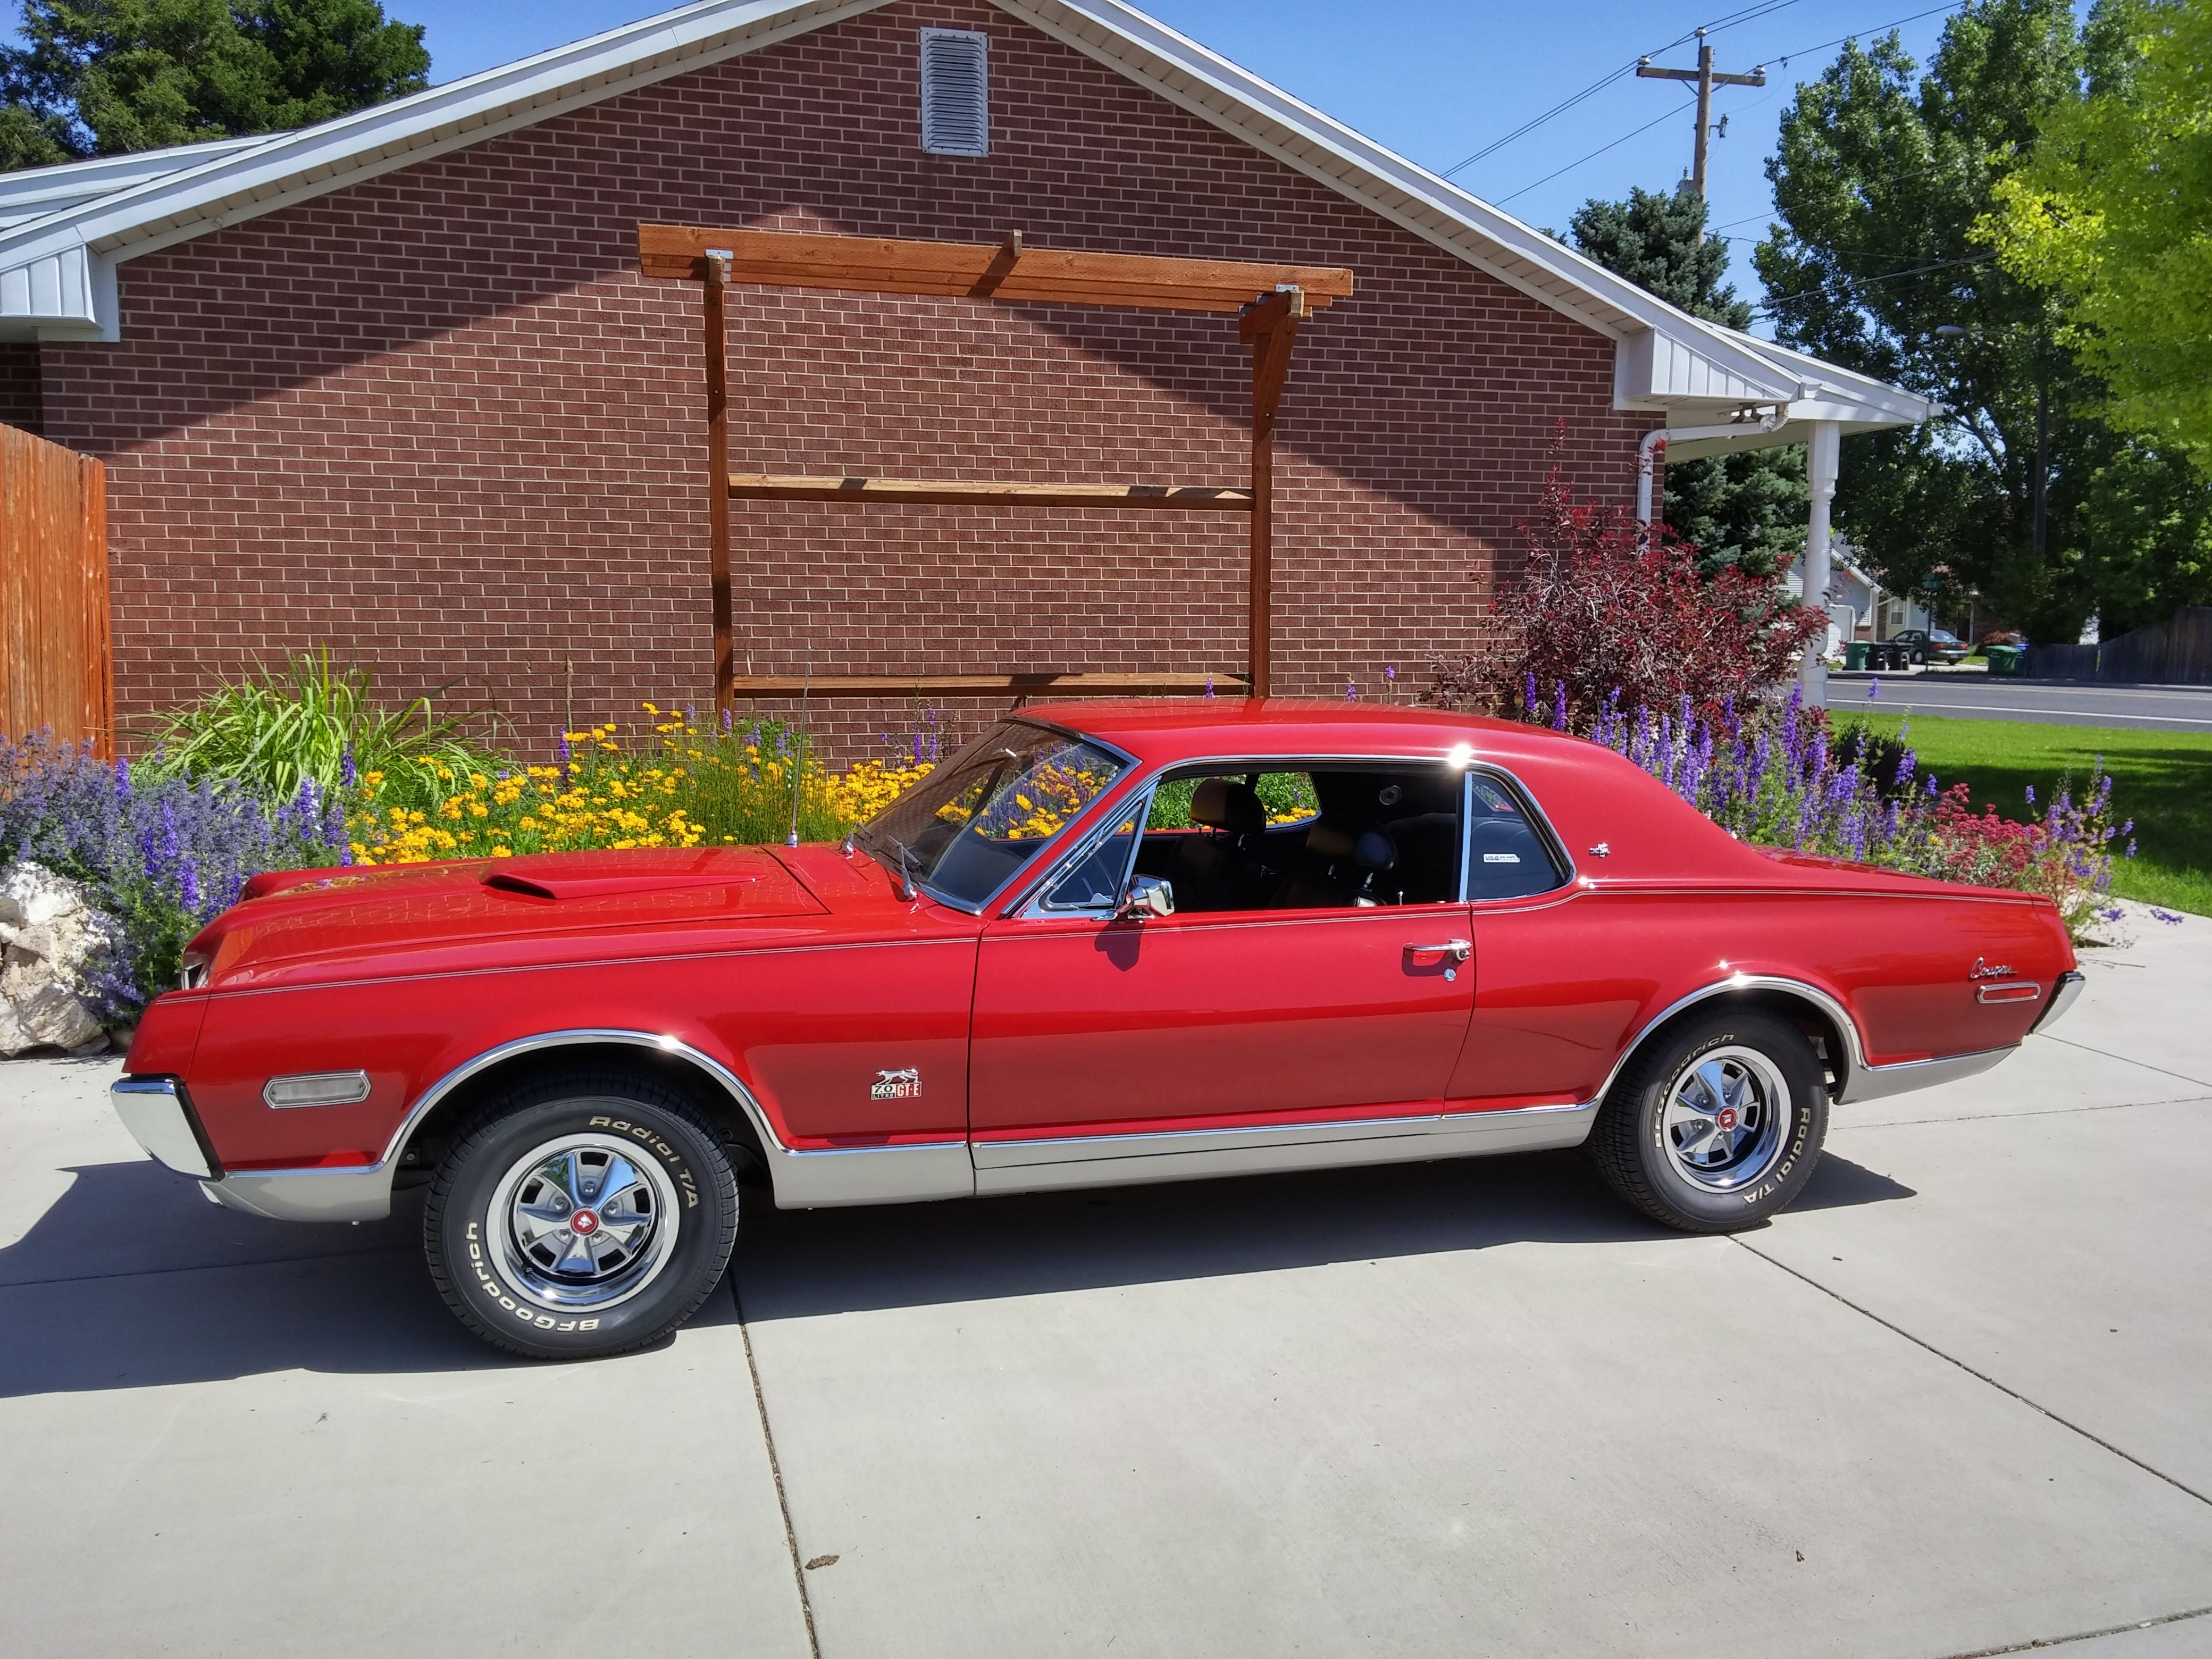 1968 mercury cougar xr 7 gt e w code ford mustang s younger